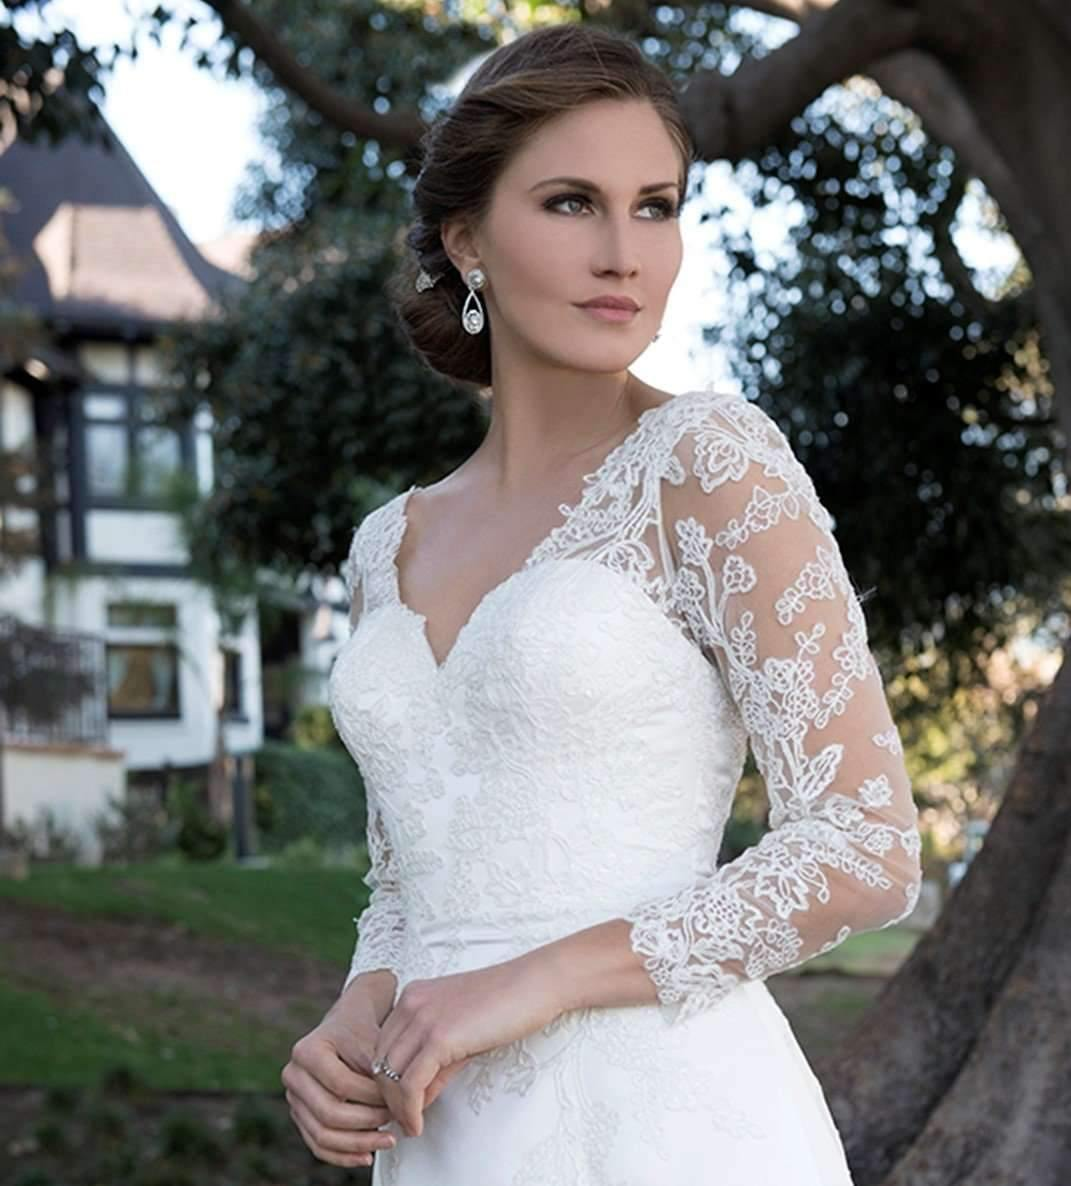 UK20 - KATELIN - SALE - Adore Bridal and Occasion Wear